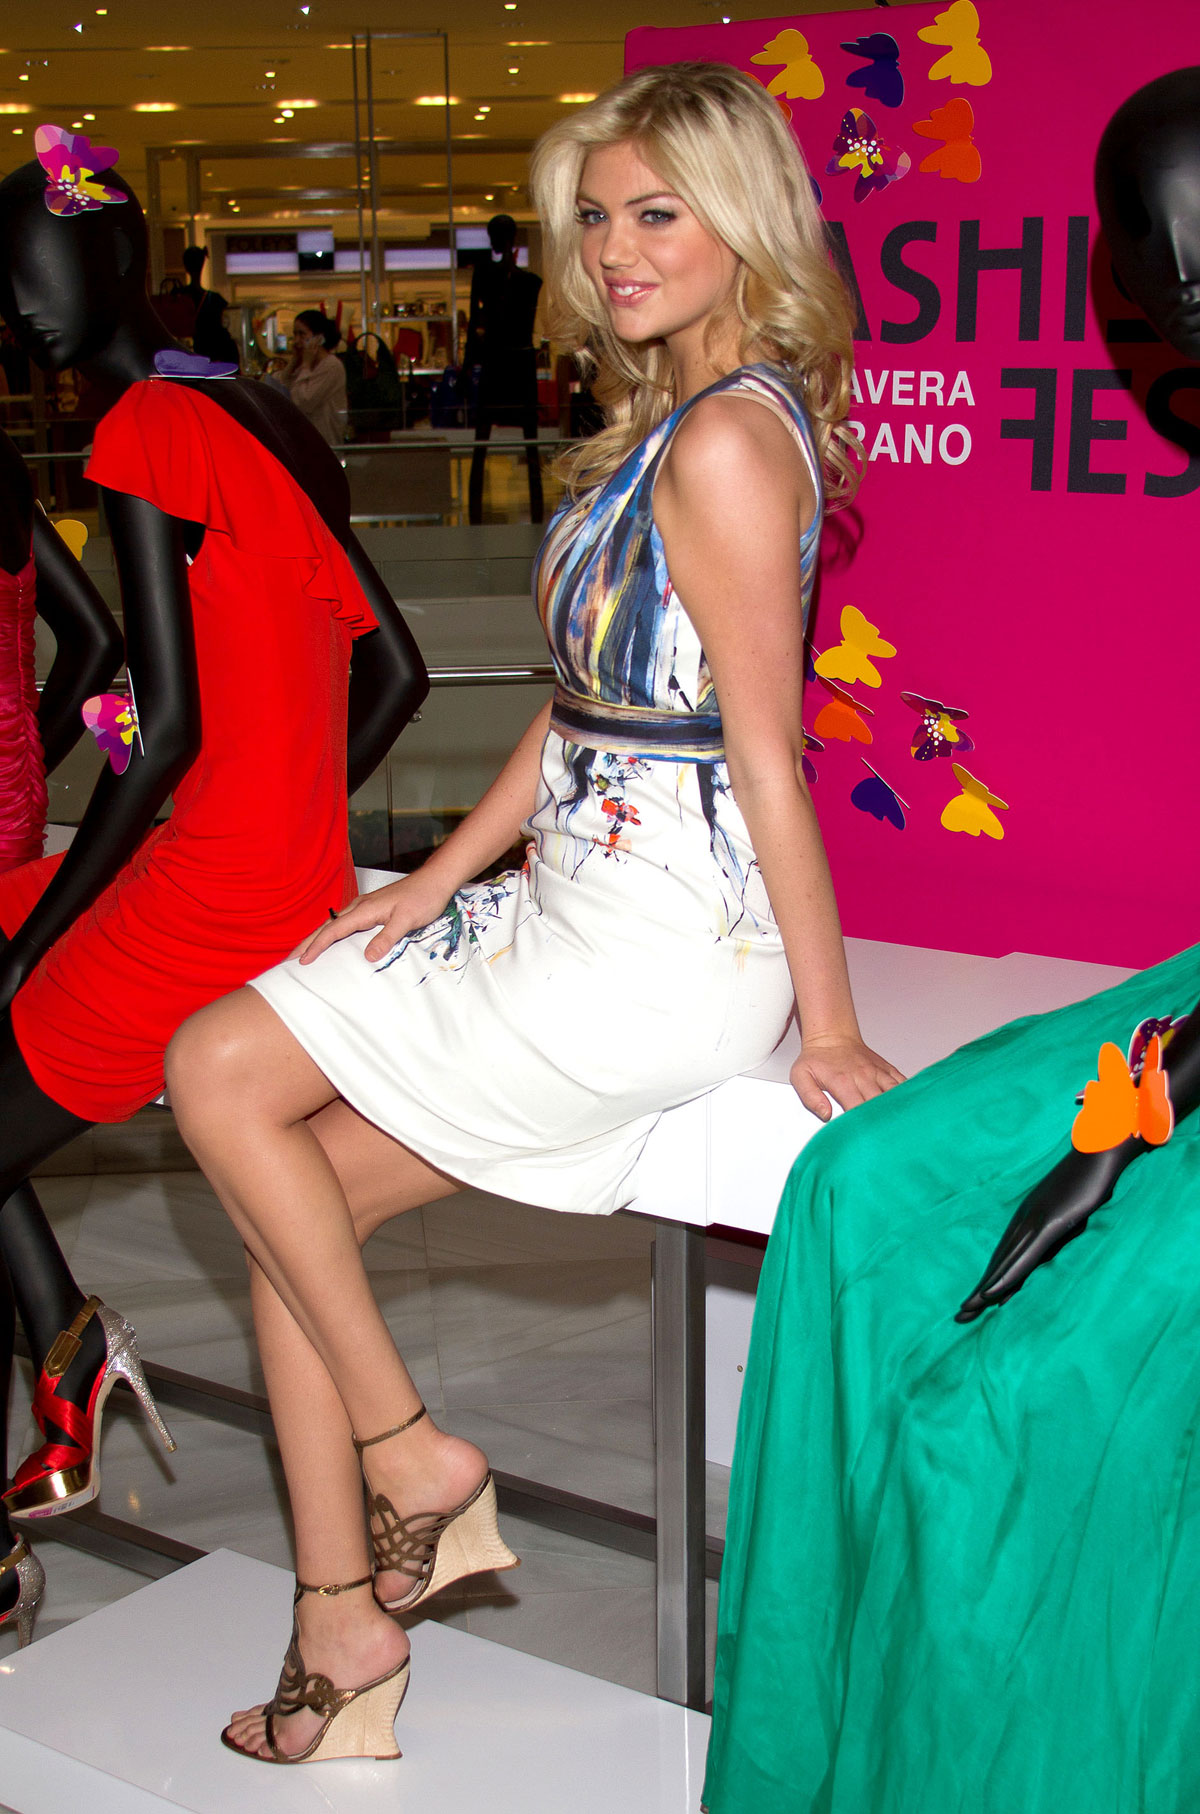 Kate Upton At Liverpool Interlomas Promotional Tour In Mexico City HawtCelebs